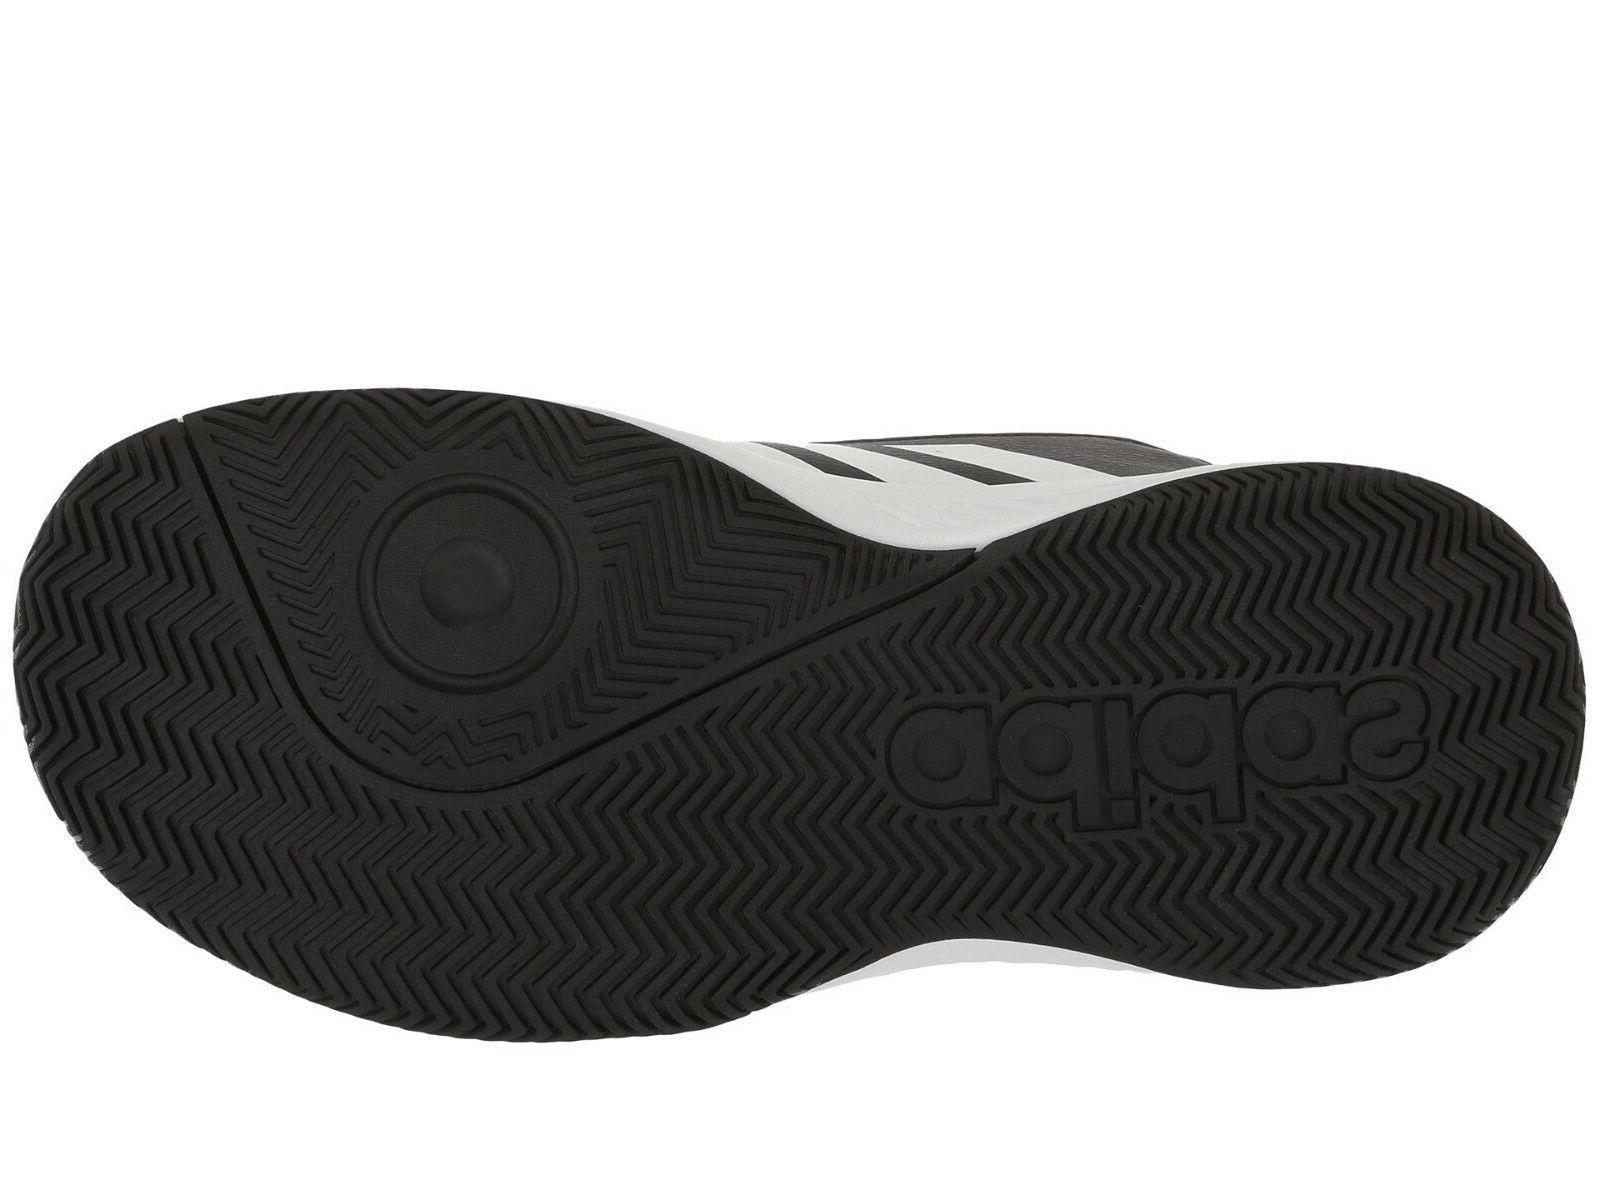 Men Adidas 2.0 Basketball Shoes Black White